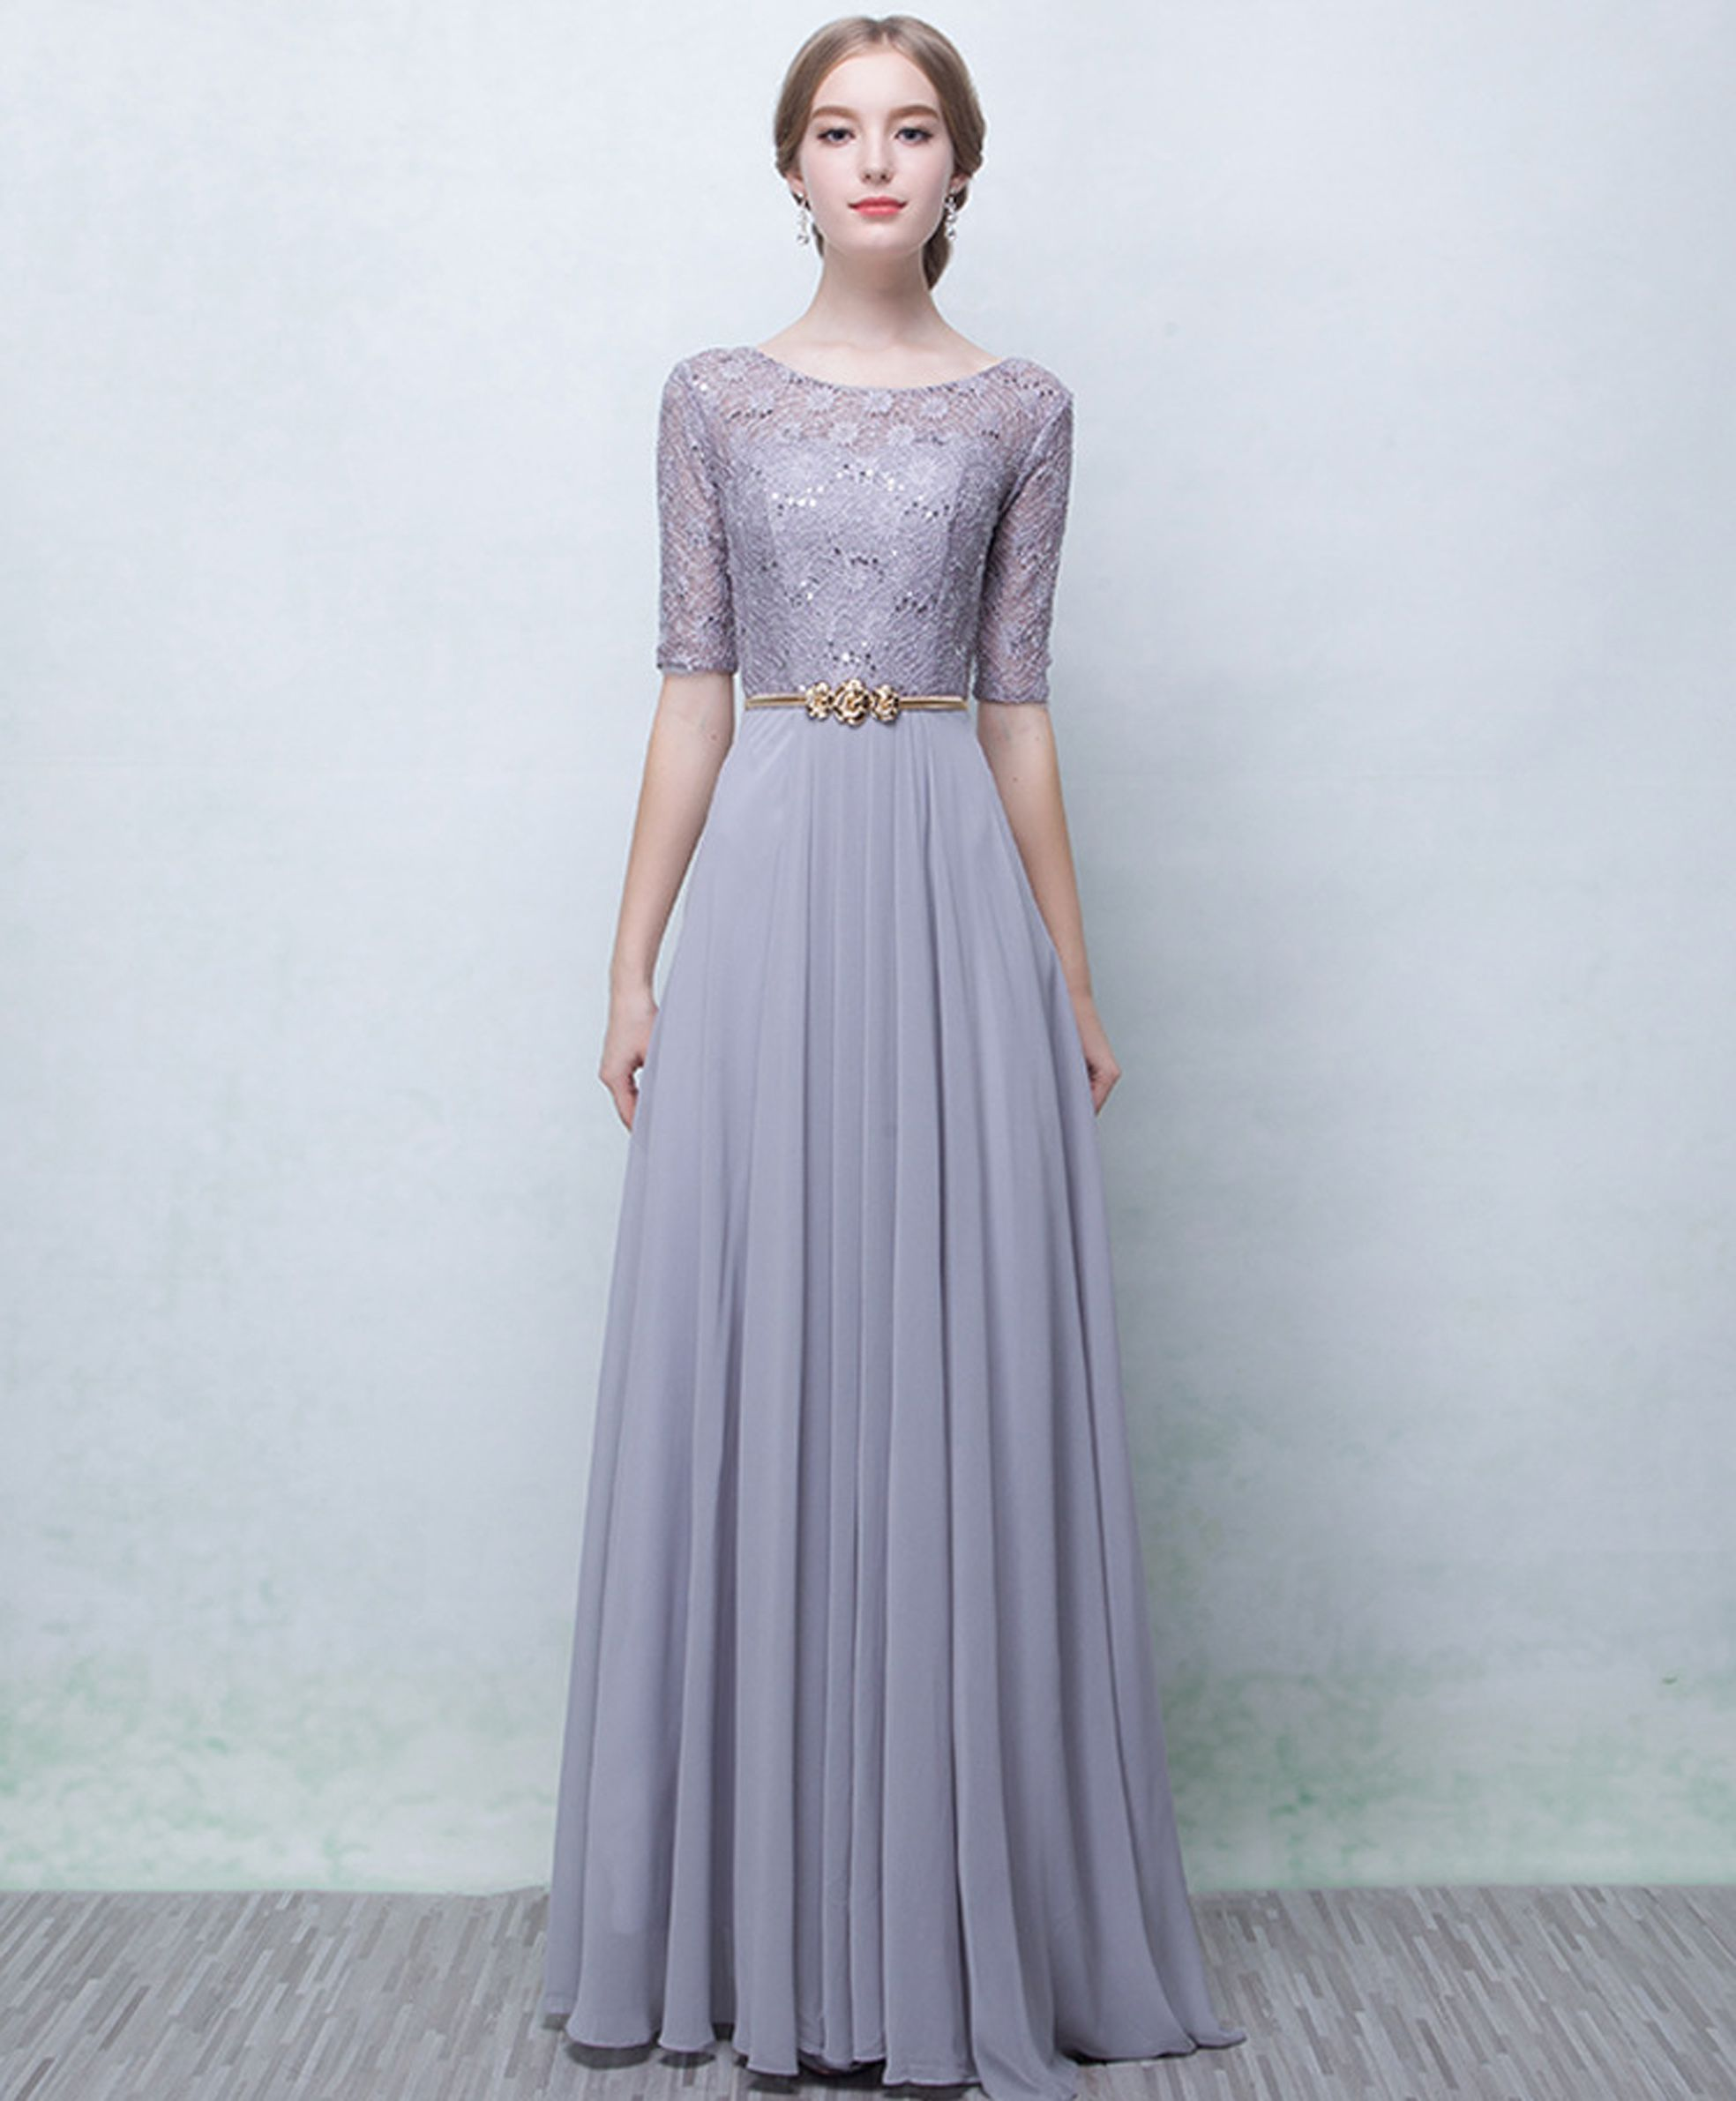 Exquisite for fashion come to buy elegant purple lace